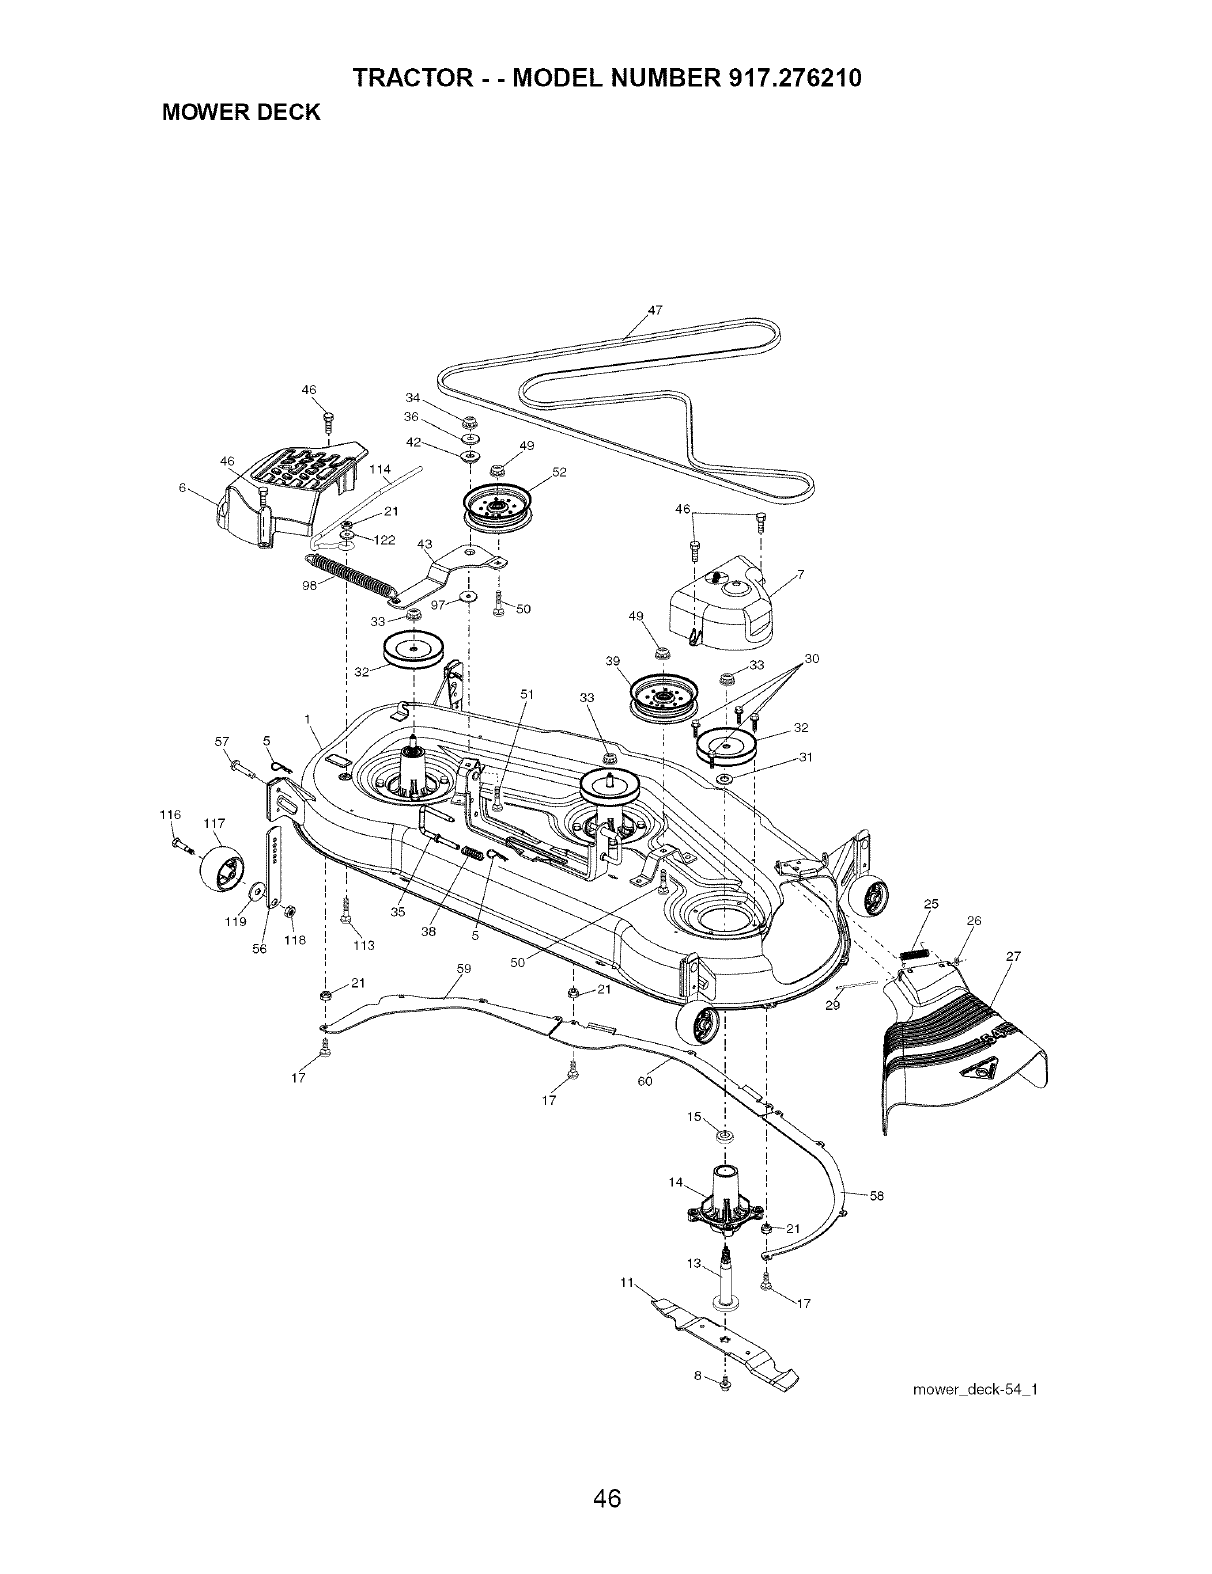 Page 46 of Craftsman Lawn Mower 917.27621 User Guide